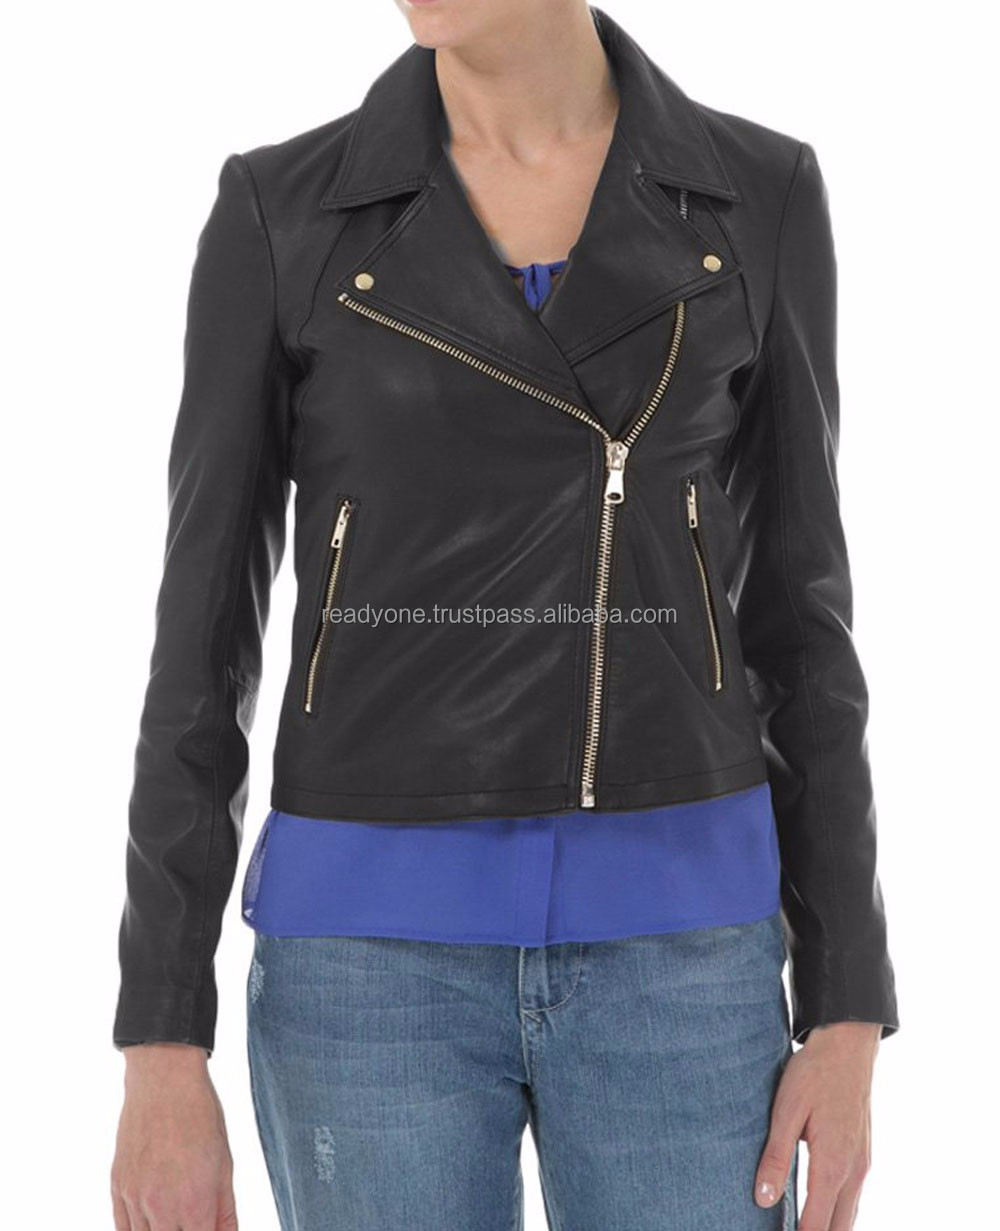 Alibaba wholesale women clothing market hot sale short black leather jacket ladies